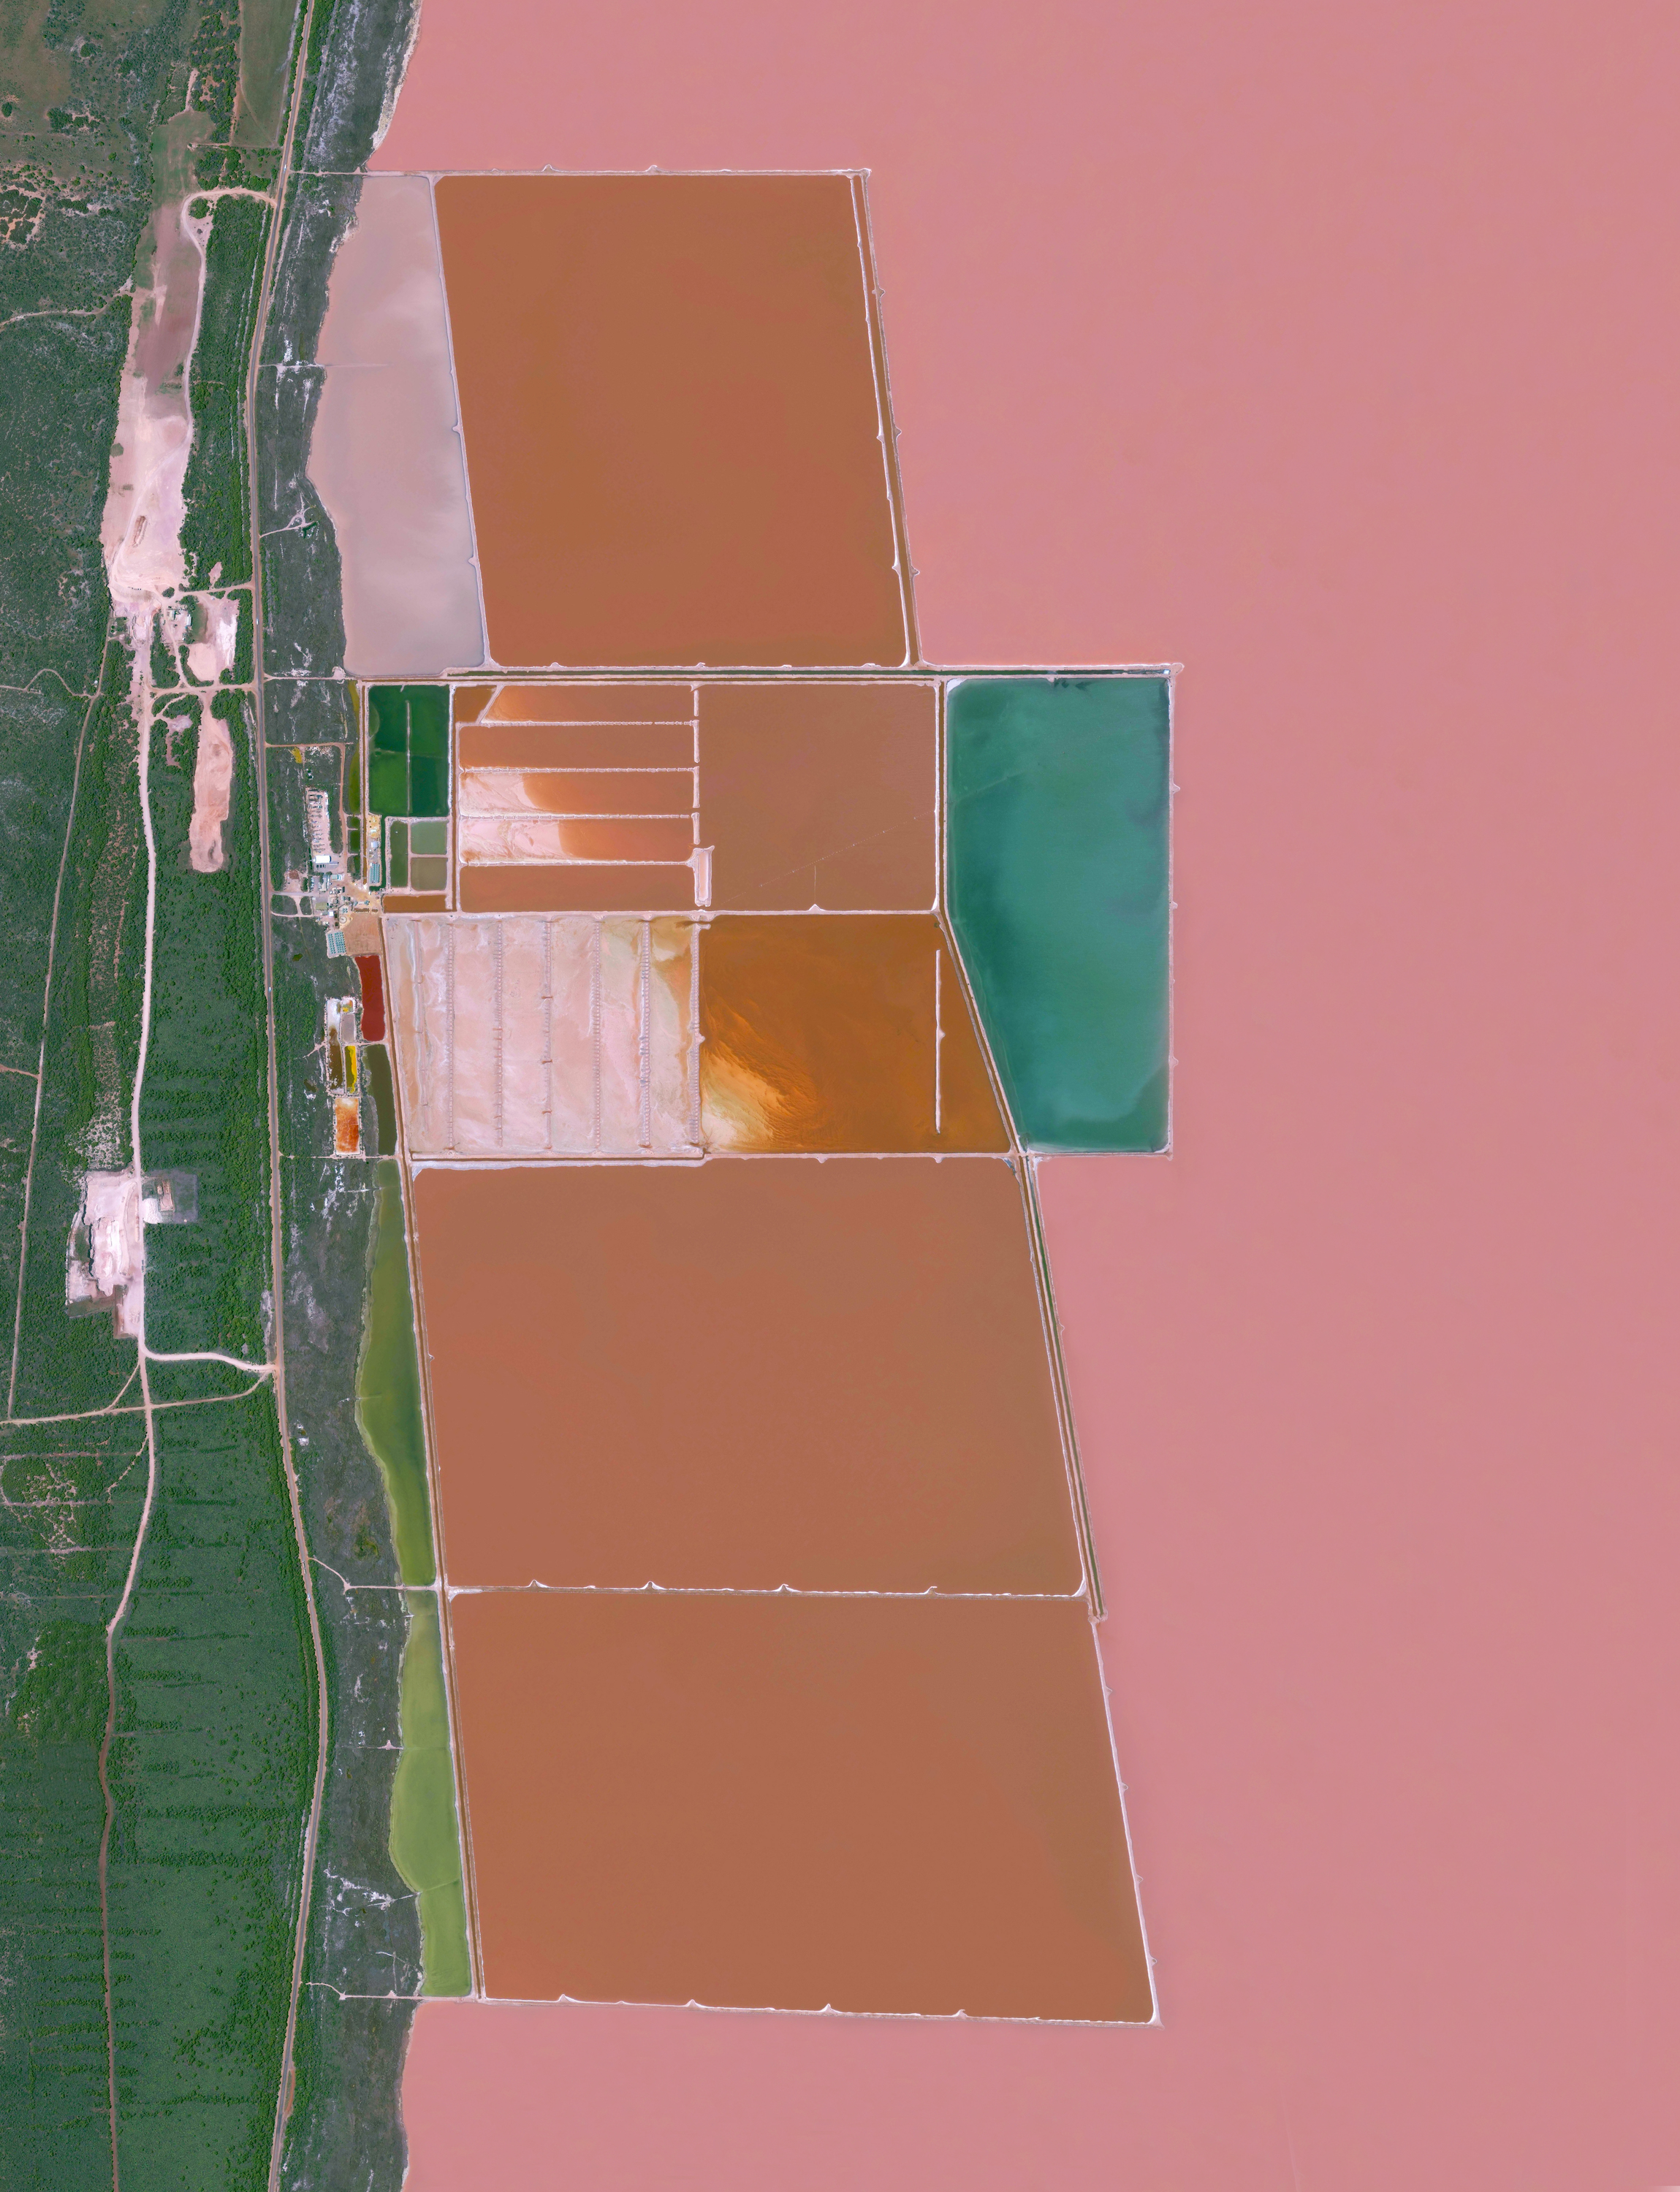 "12/9/2016   Hutt Lagoon   Western Australia  –28.172005°, 114.261002°     Here's a never-before-seen image from ""Overview."" Hutt Lagoon is a massive lake in Western Australia that gets its pink color from a particular type of algae - Dunaliella salina - that grows in the water. The lagoon contains the world's largest microalgae production plant, where the algae is farmed for its beta-carotene, which is then used as a food‑coloring agent and source of Vitamin A in other products."